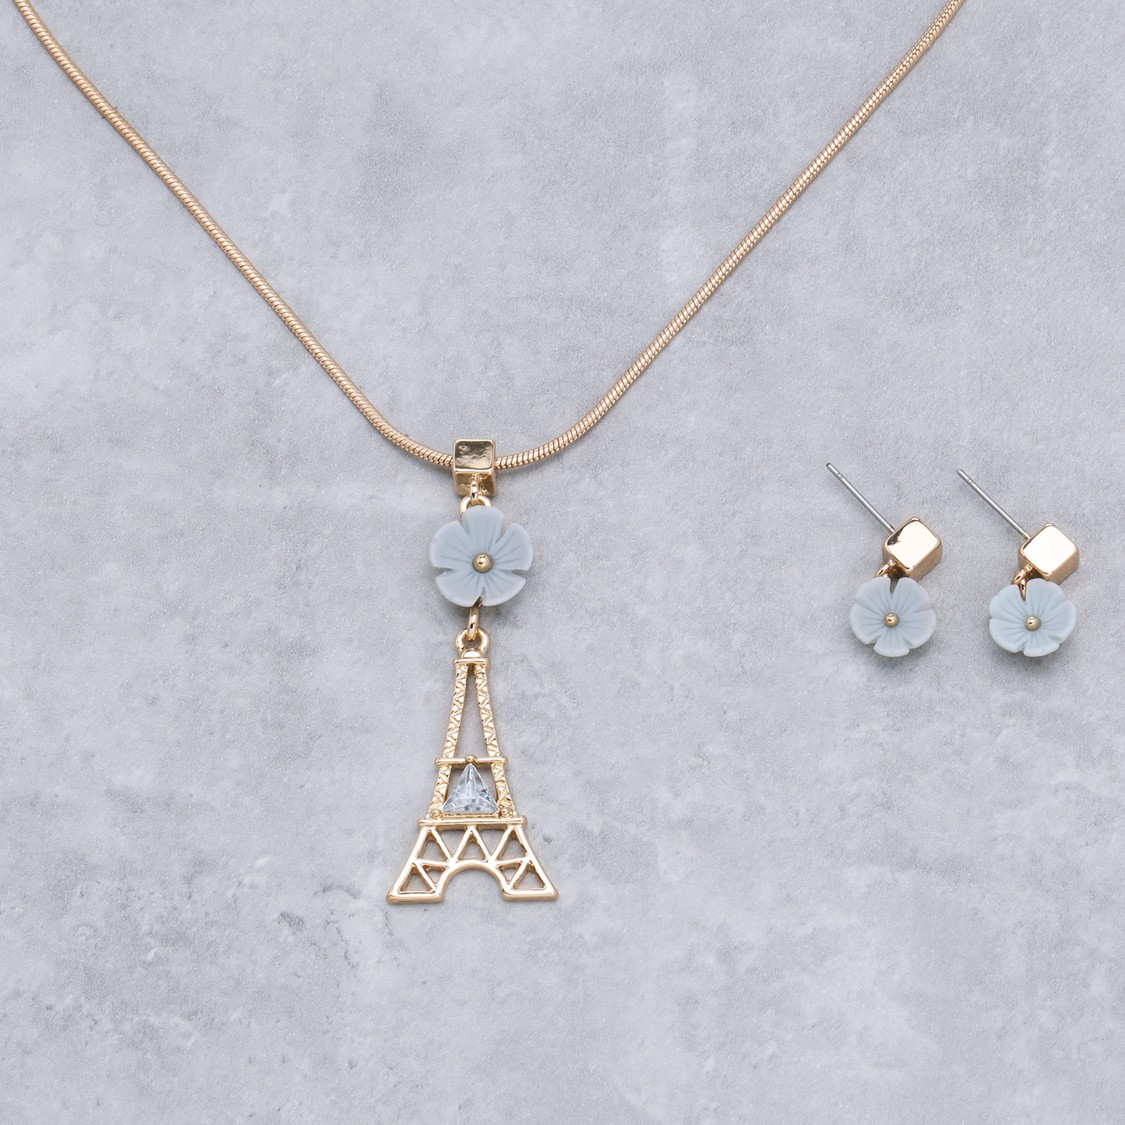 Studded Necklace and Earrings Set